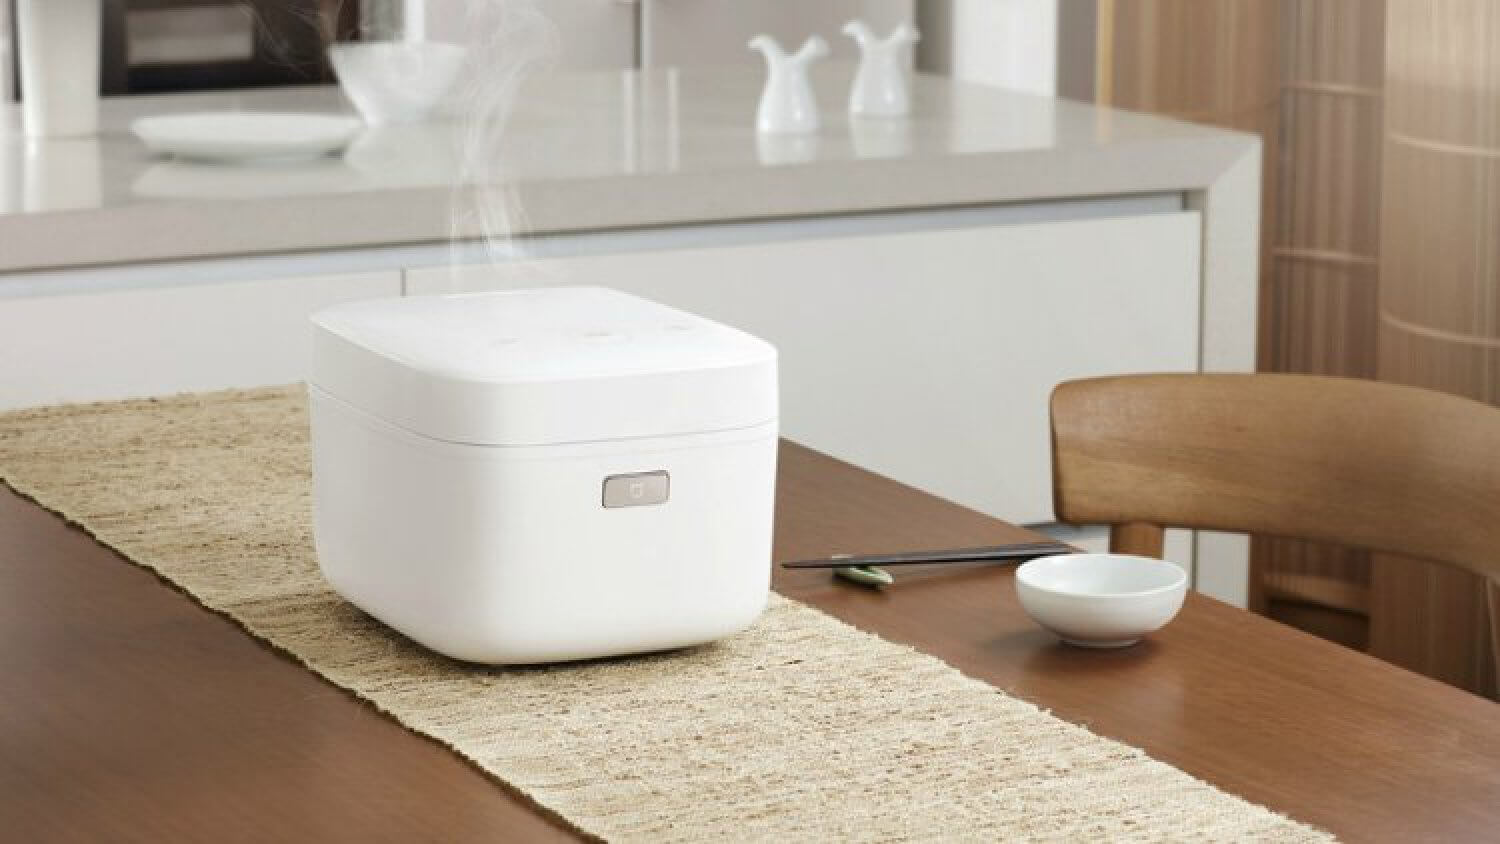 Mi Induction Heating Pressure Rice Cooker